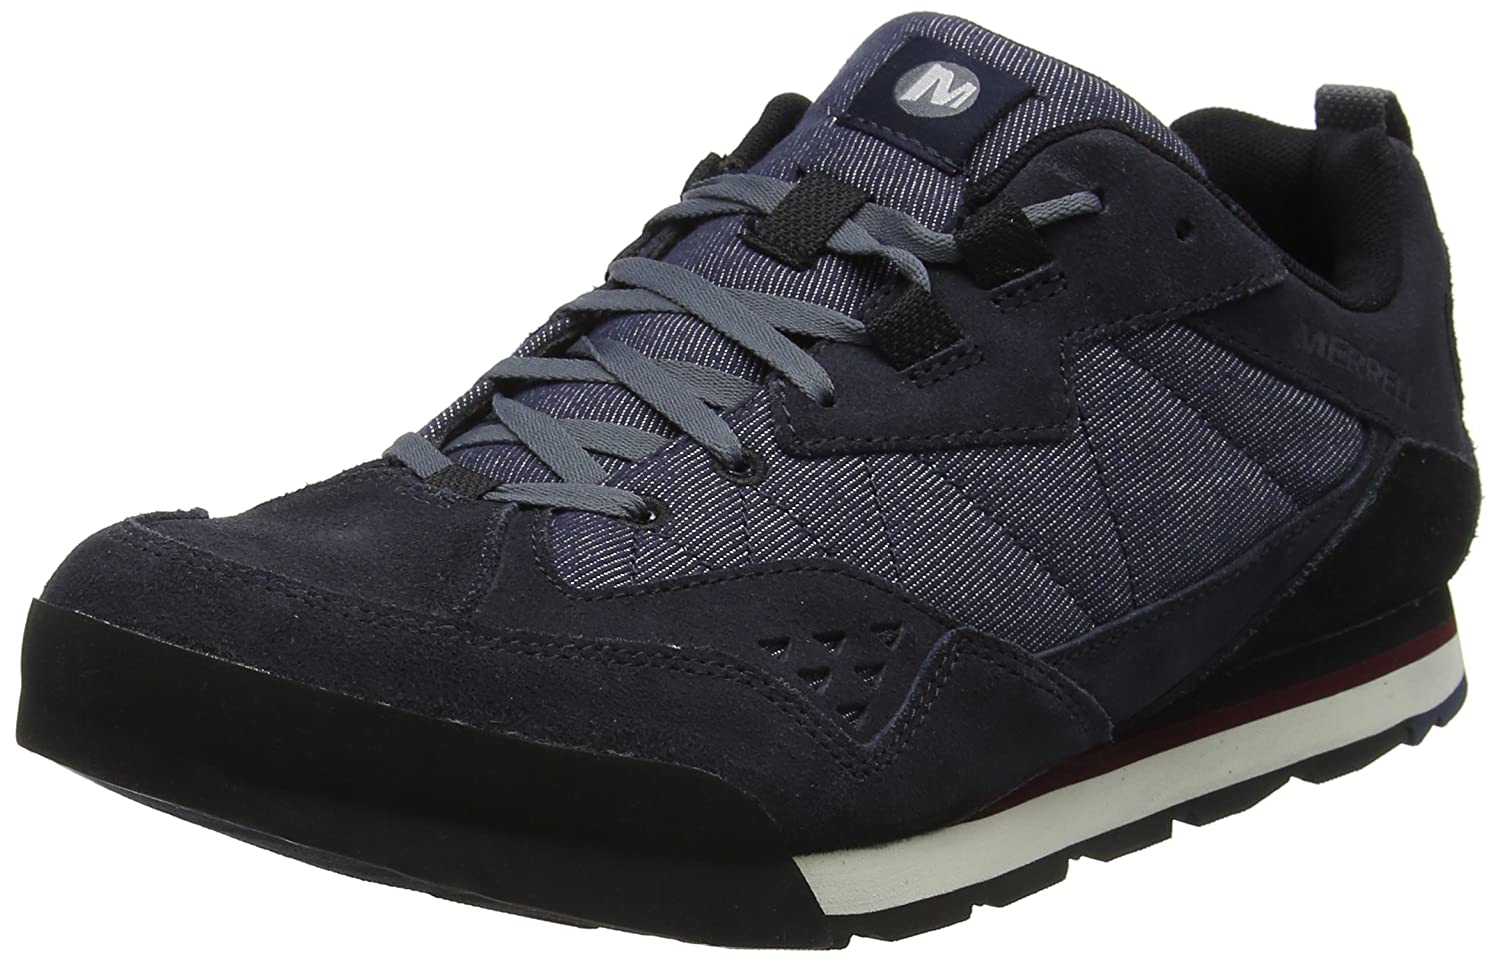 TALLA 47 EU. Merrell Burnt Rock Tura Denim Low, Zapatillas para Hombre